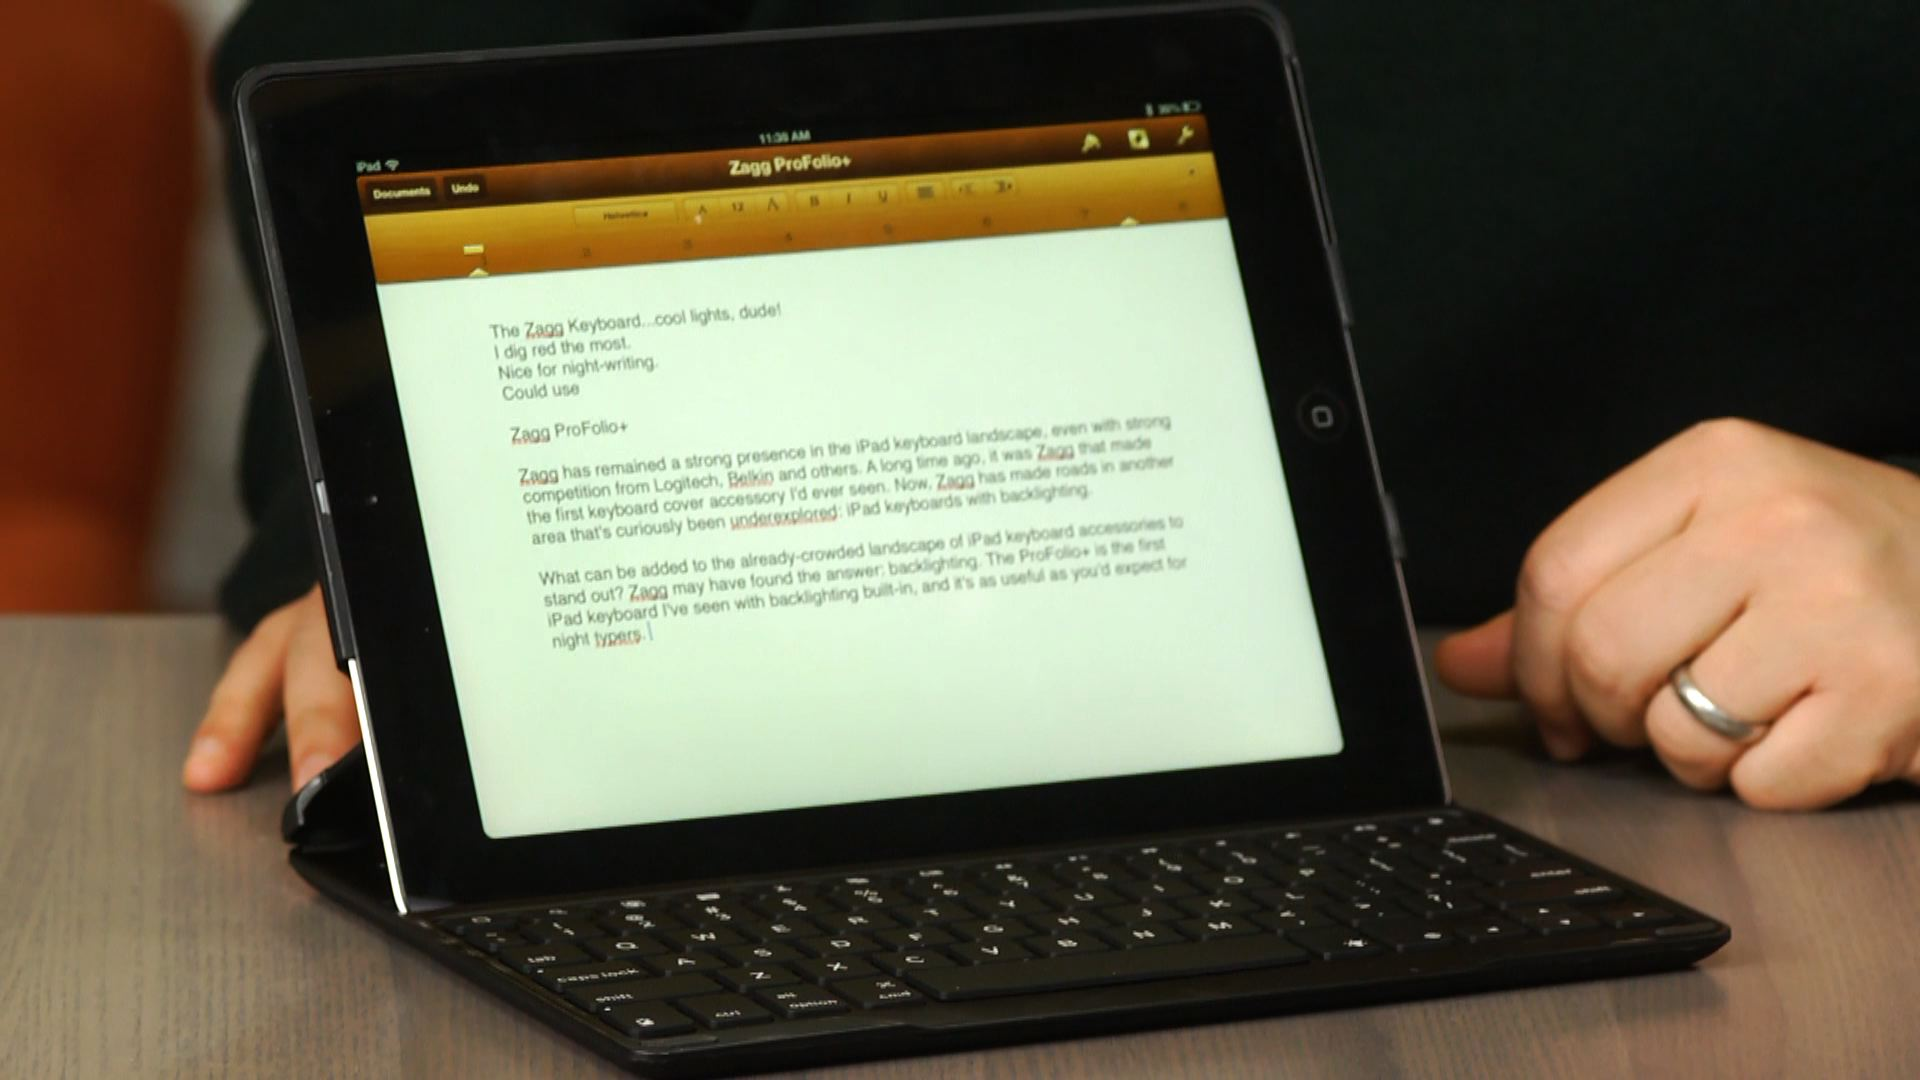 Video: ZaggKeys ProFolio+ for iPad: backlit keyboard case lights it up